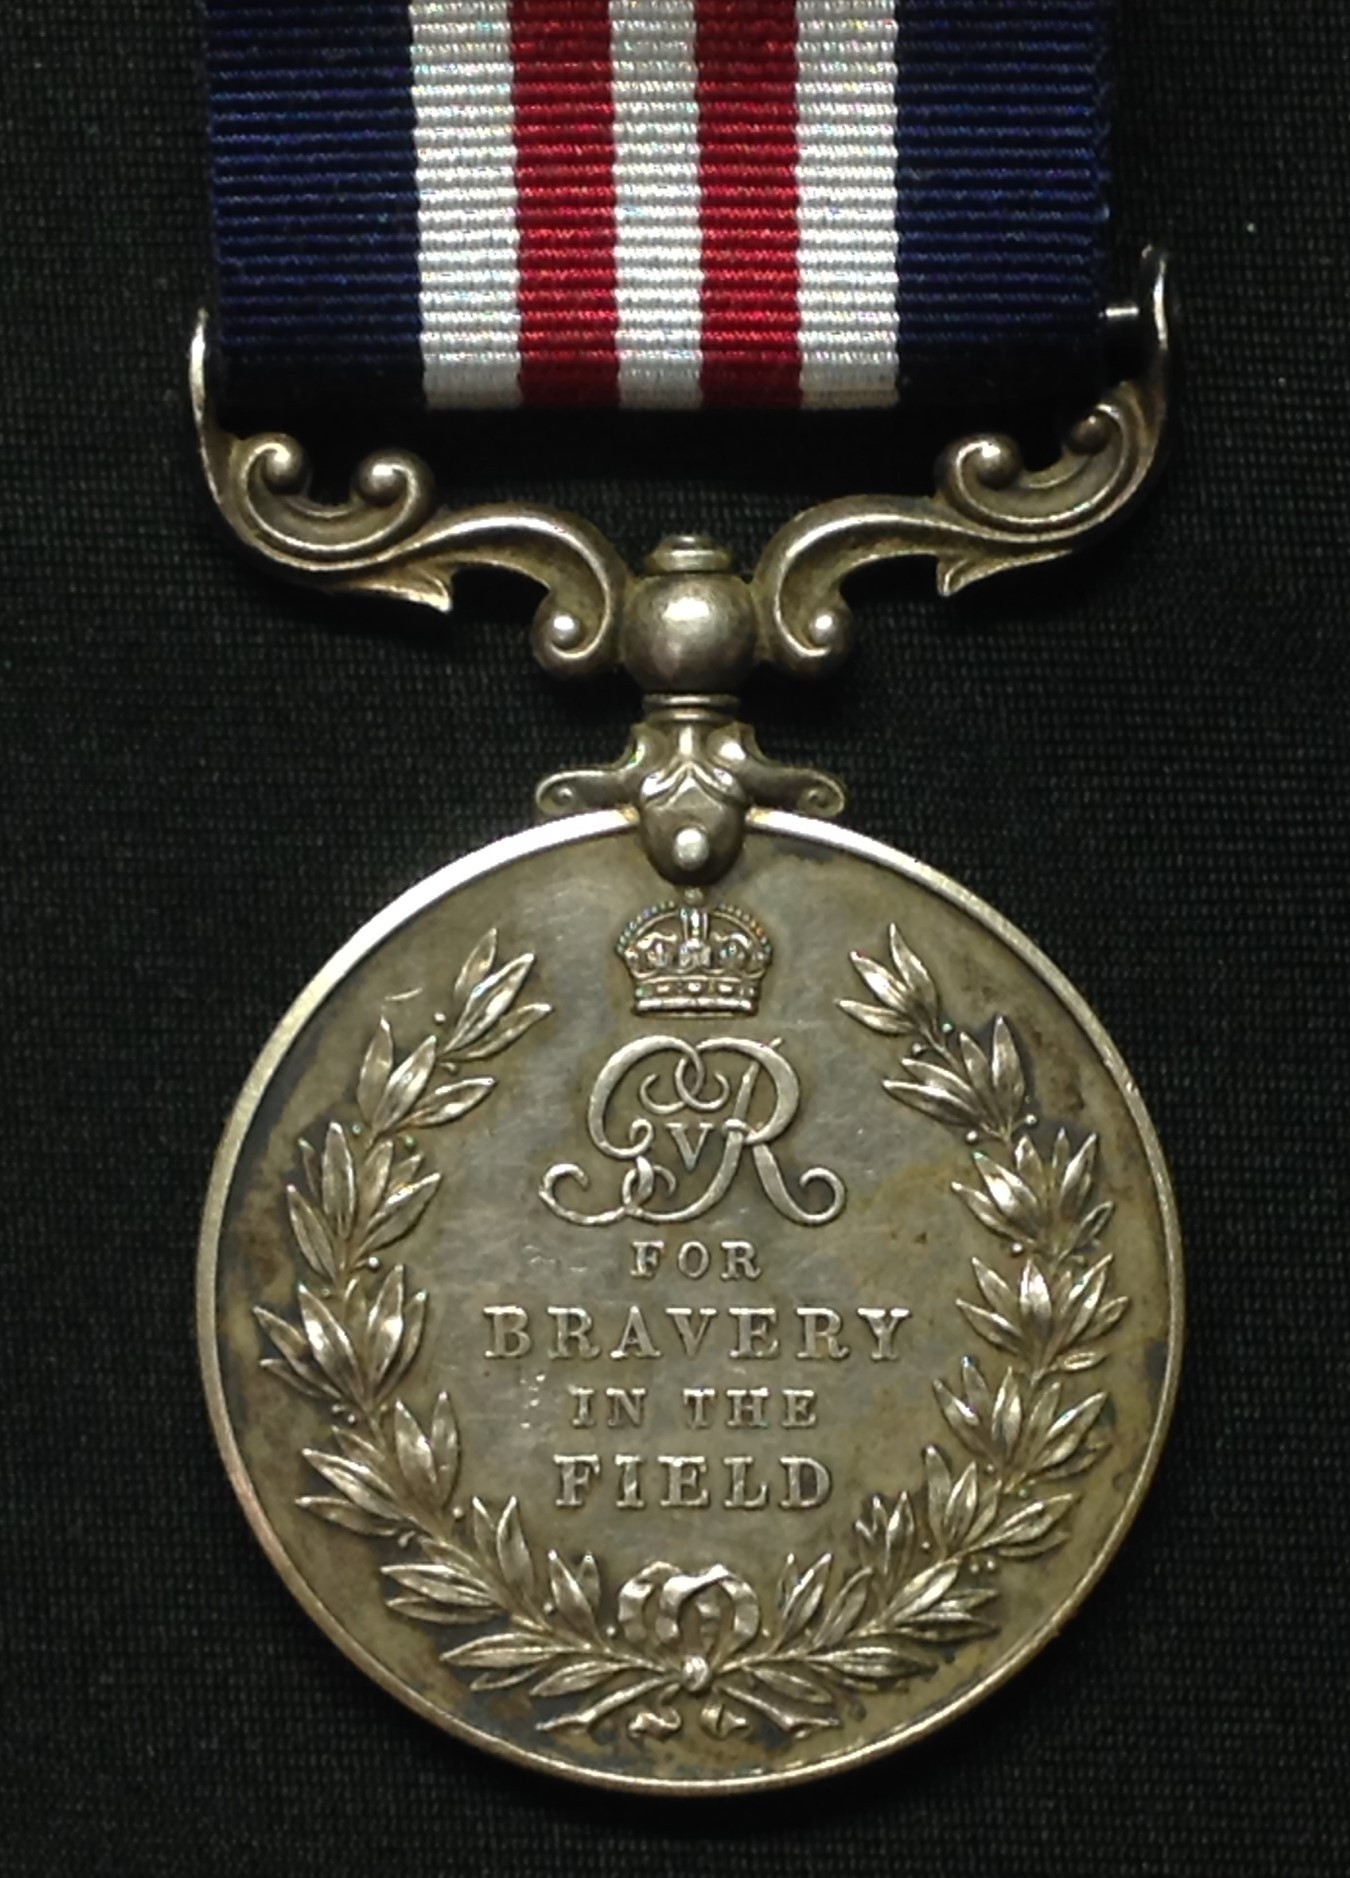 WW1 British Military Medal complete with ribbon re-named to 23829 Dvr. A G Murphy, 8/Sig Tp, RE. - Image 2 of 3